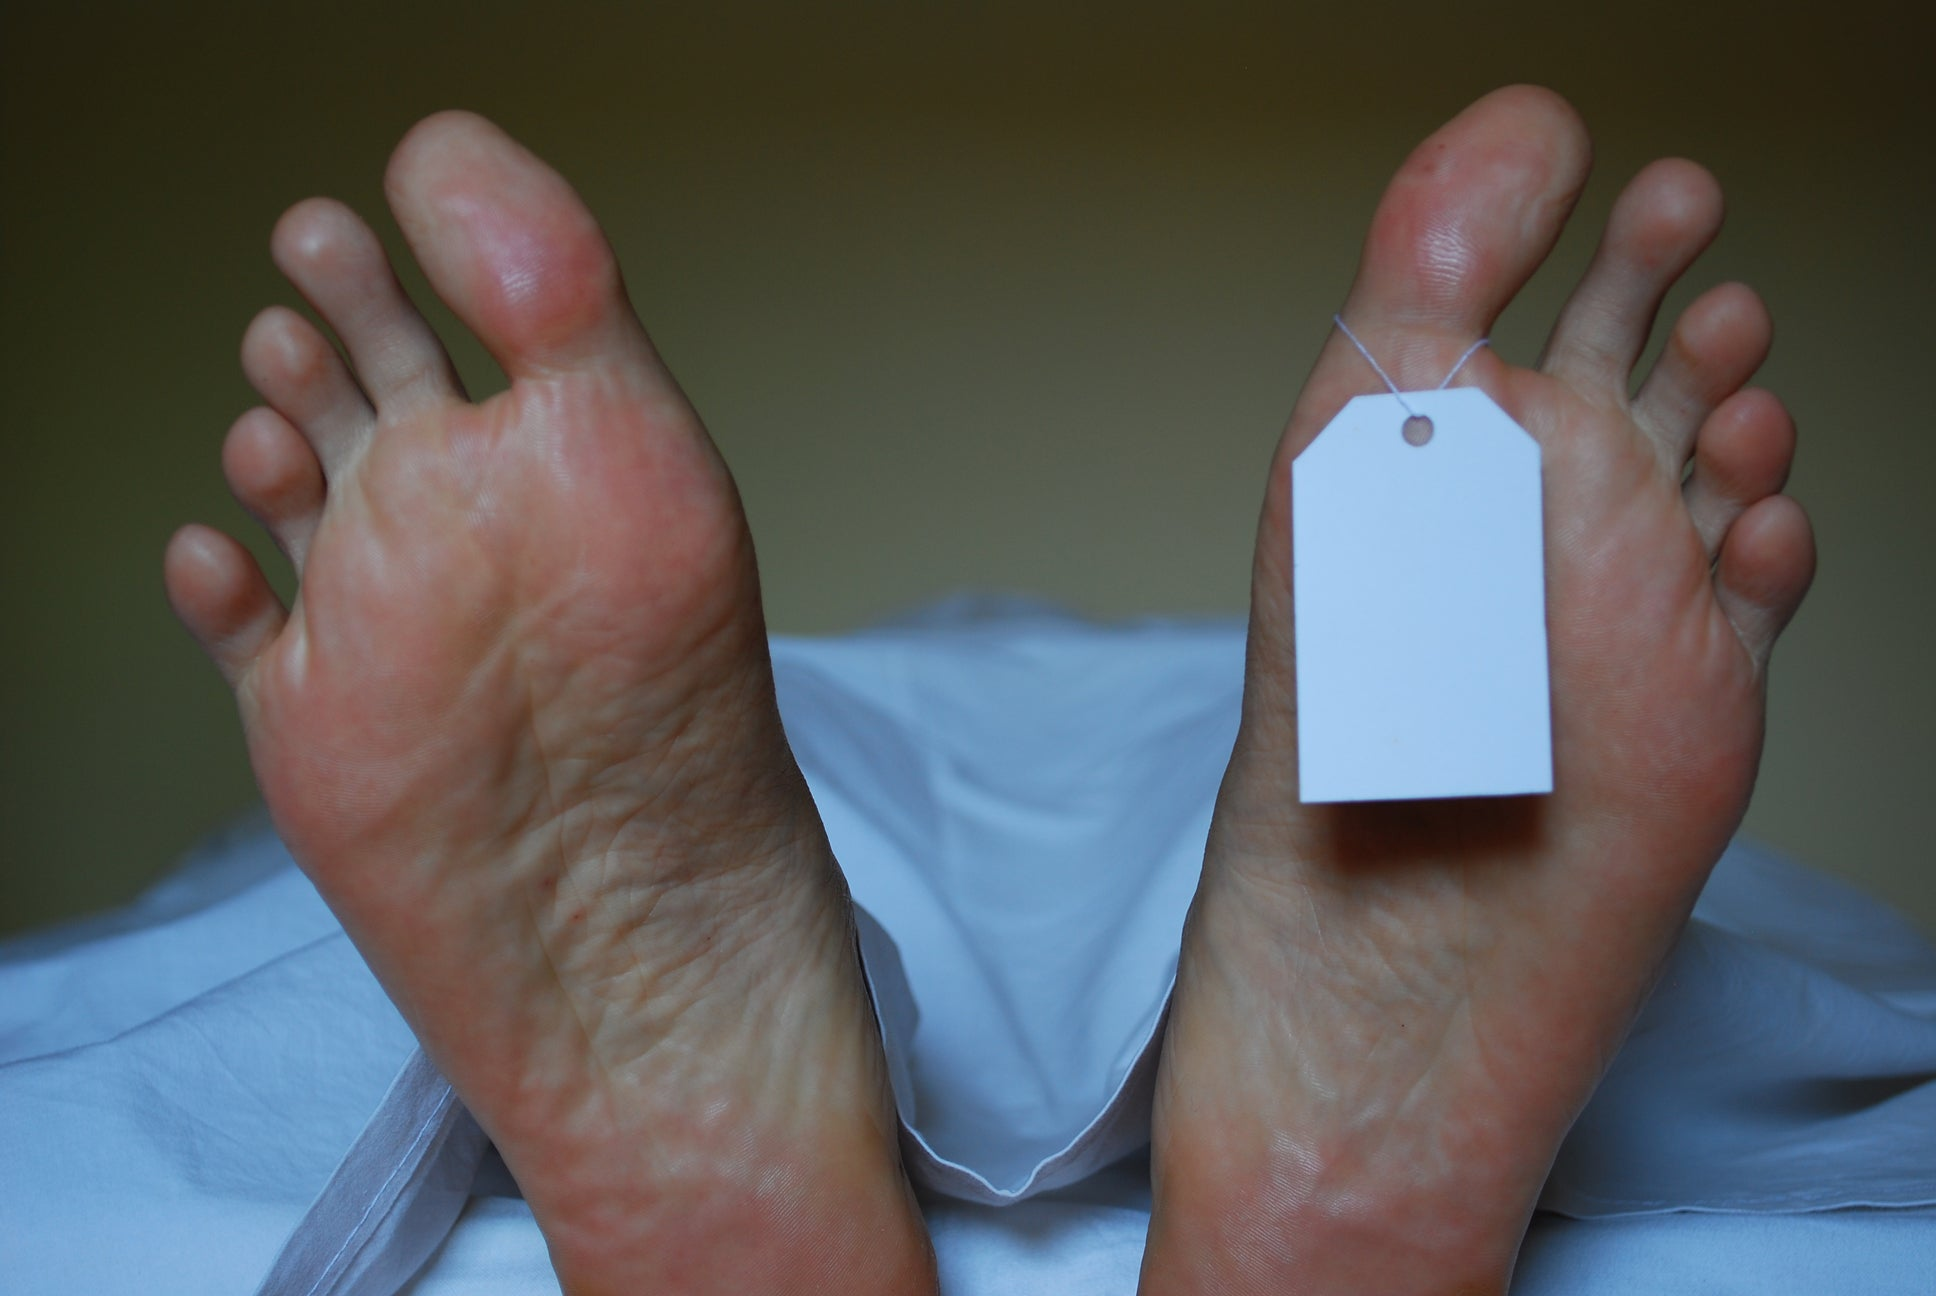 Some corpses may mysteriously heat up after death